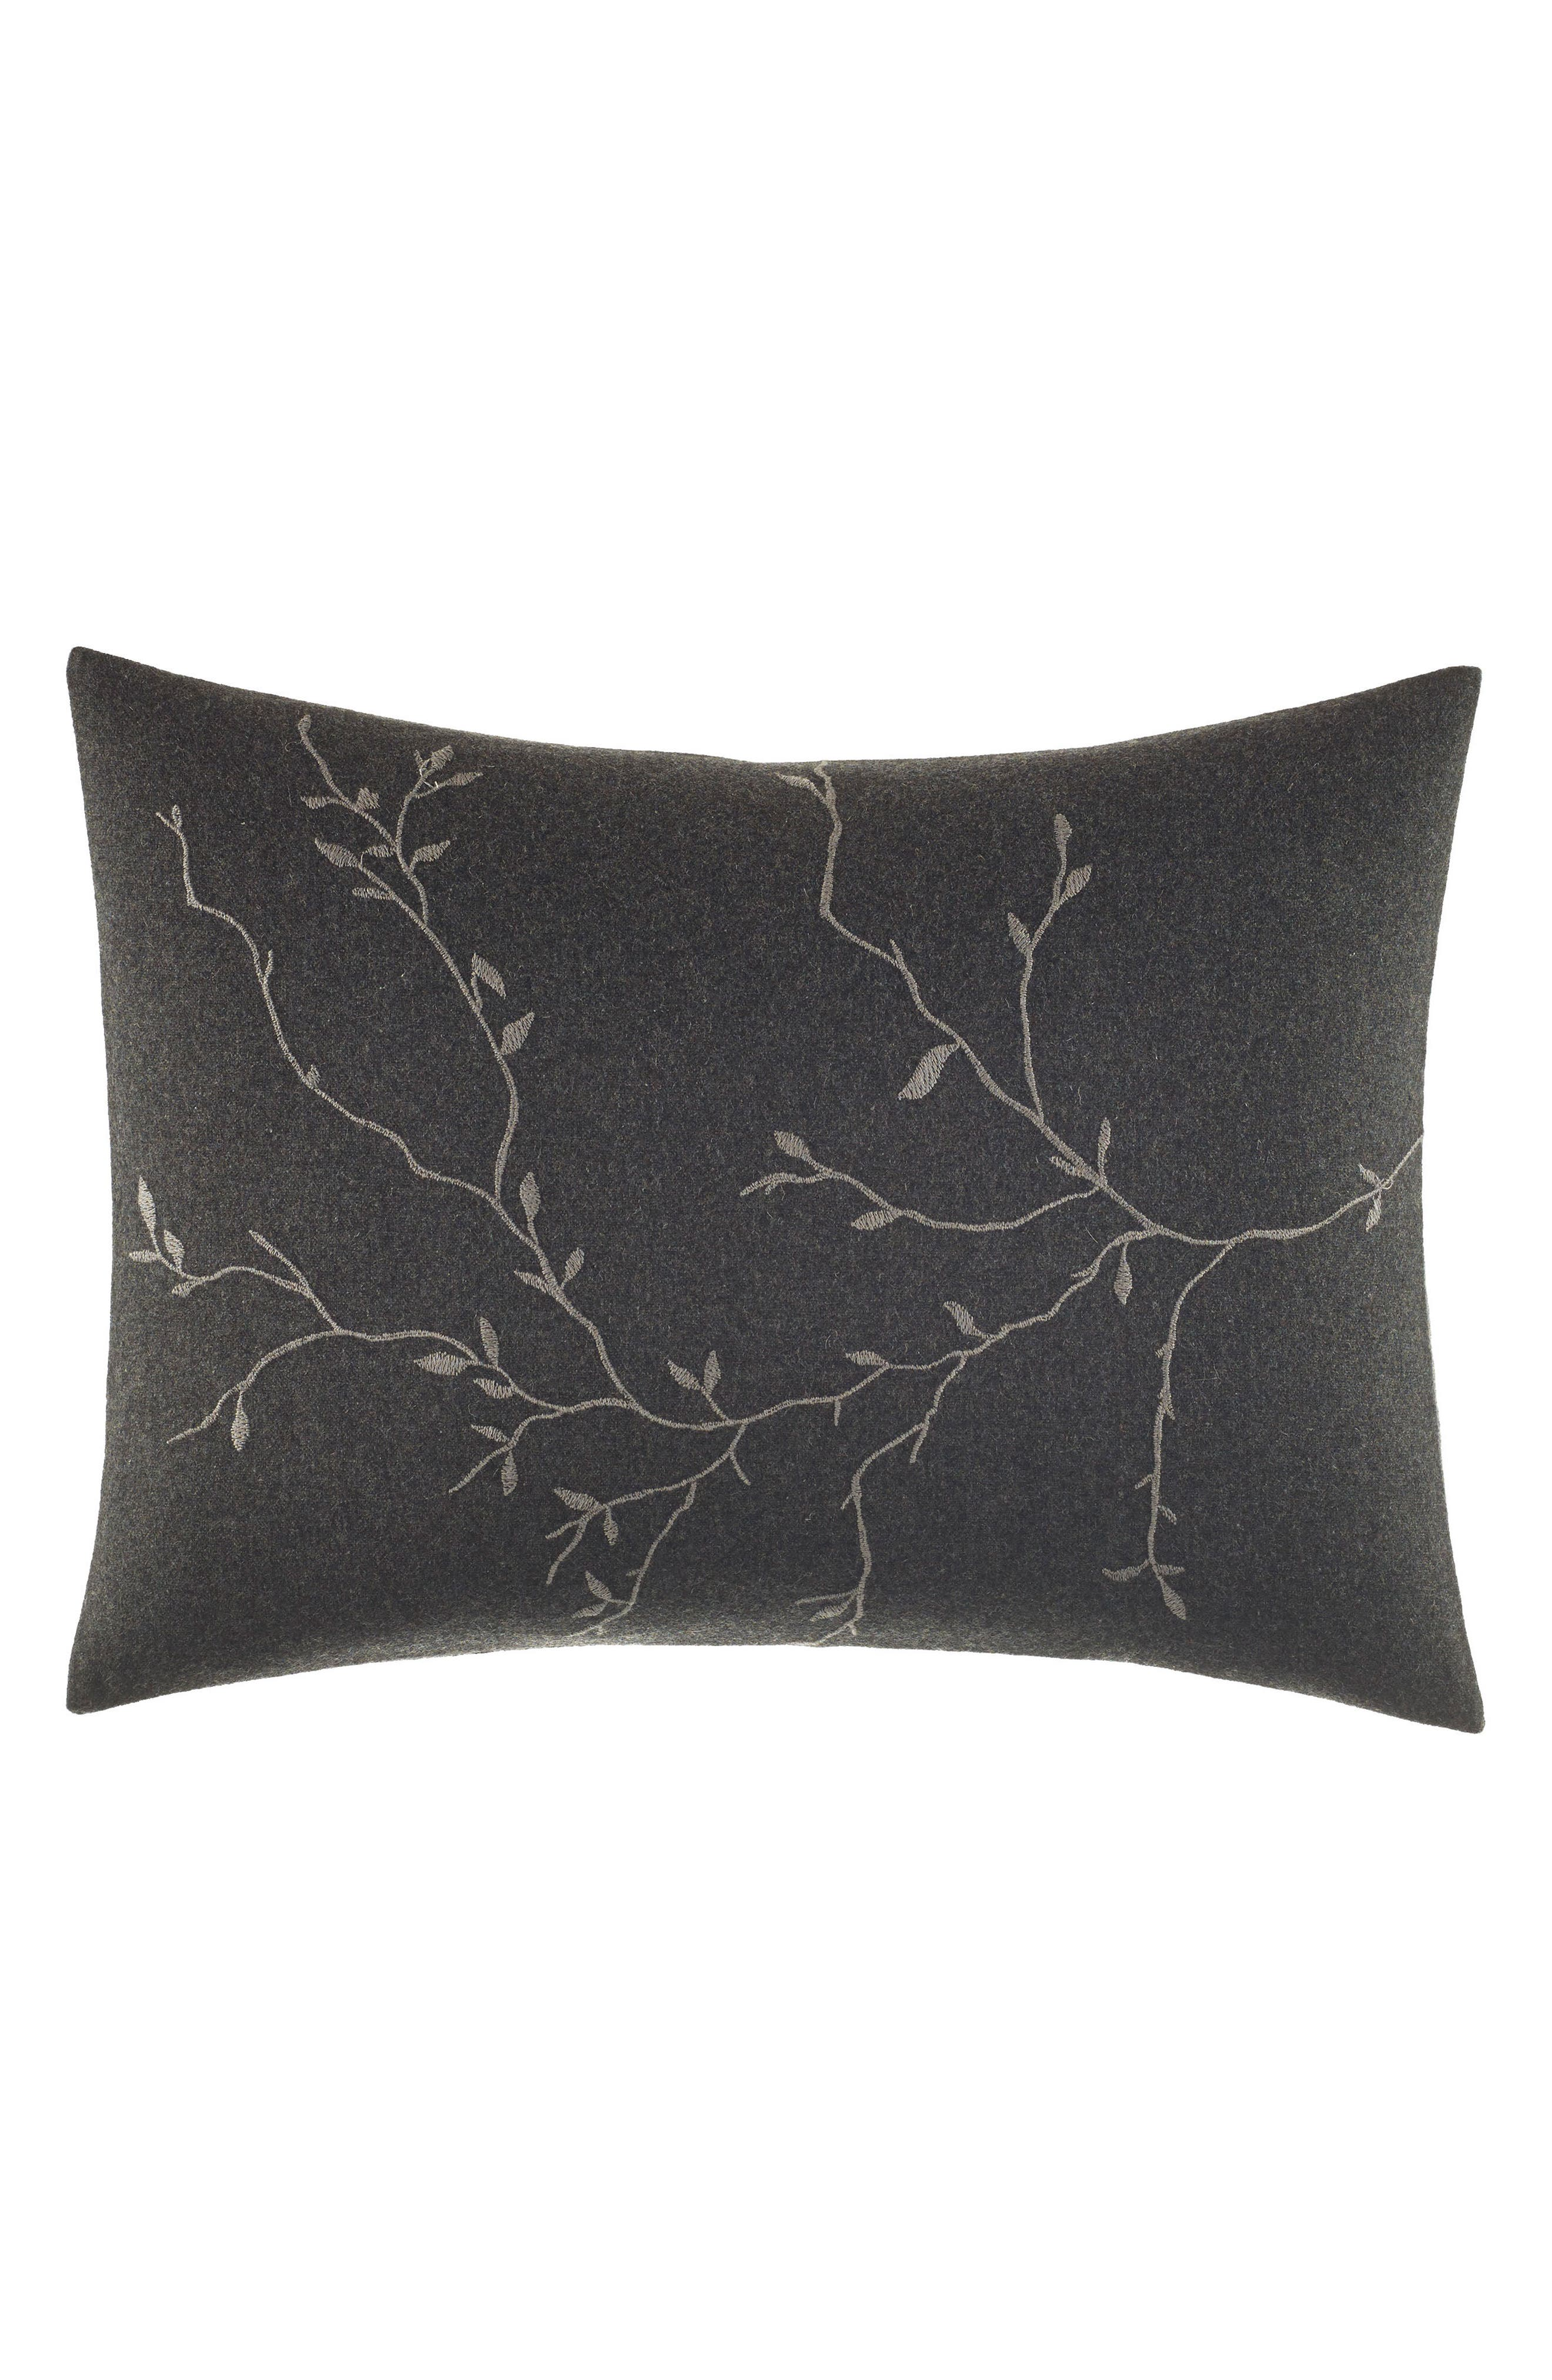 Vera Wang Charcoal Floral Vine Accent Pillow